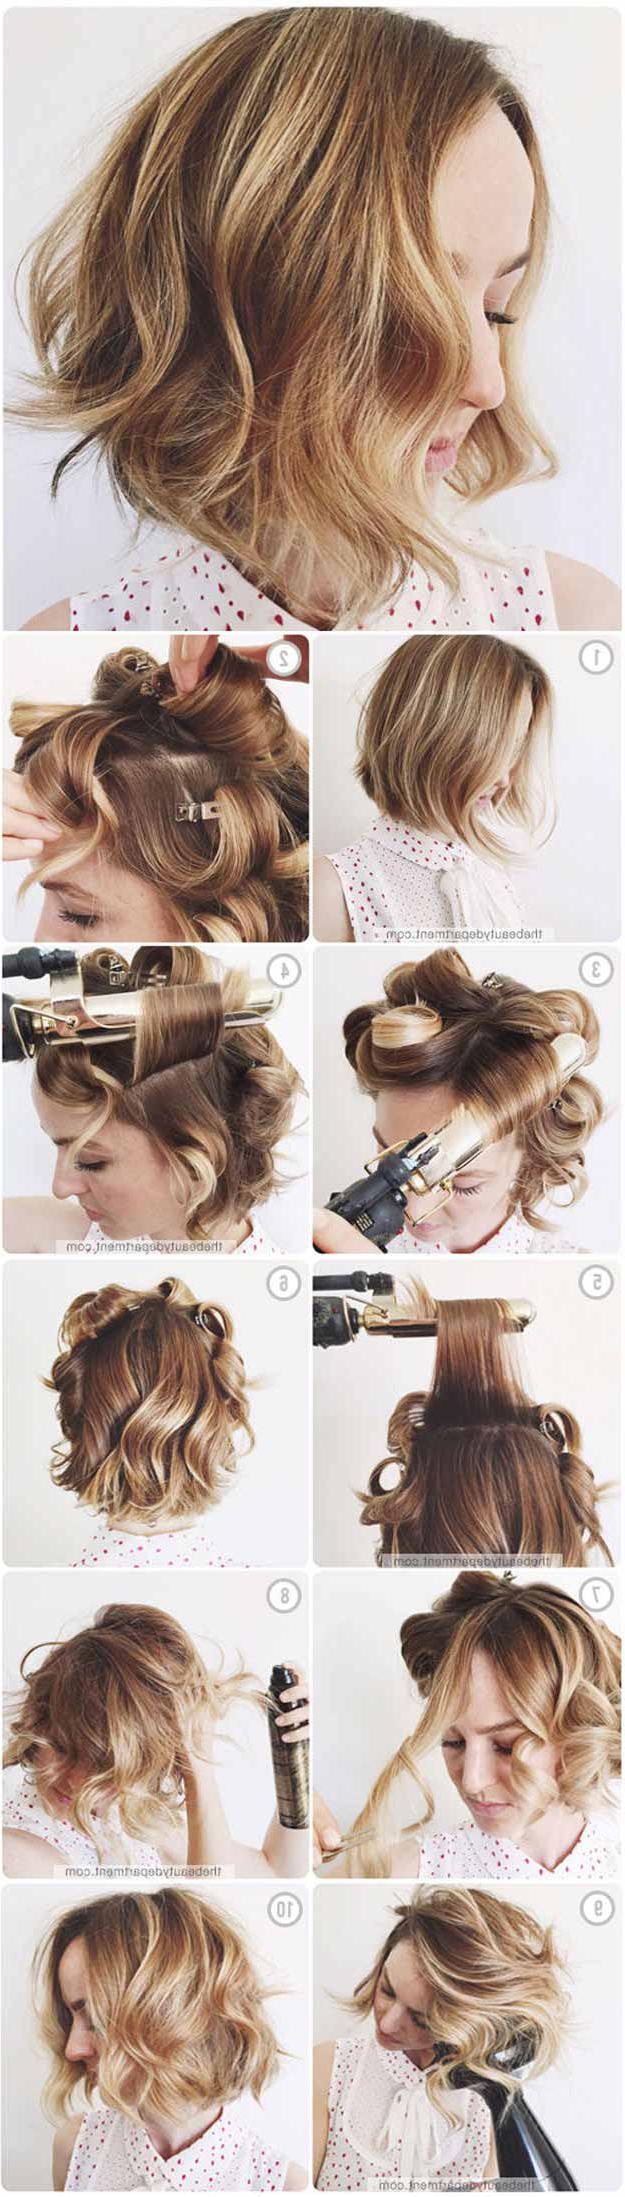 33 Best Hairstyles For Your 20S – The Goddess Intended For Most Recent Twenties Medium Hairstyles (View 5 of 20)